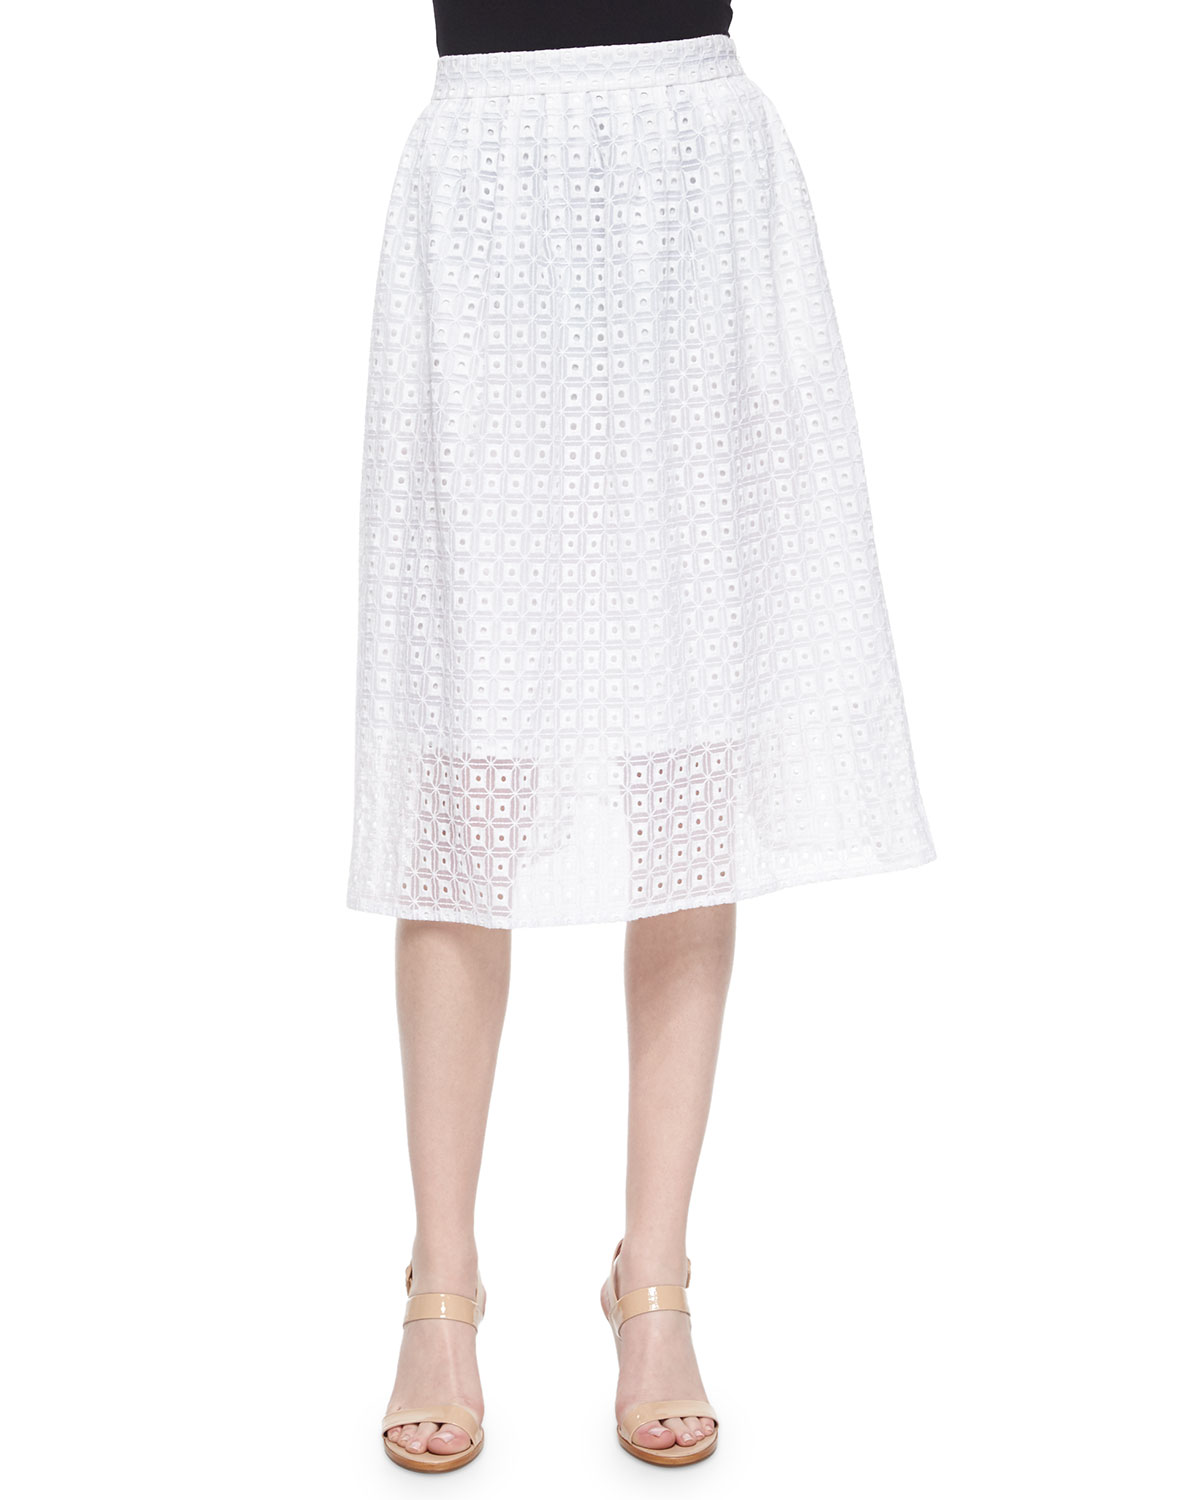 Geometric Eyelet Lace Skirt, Size: 4, White - Magaschoni